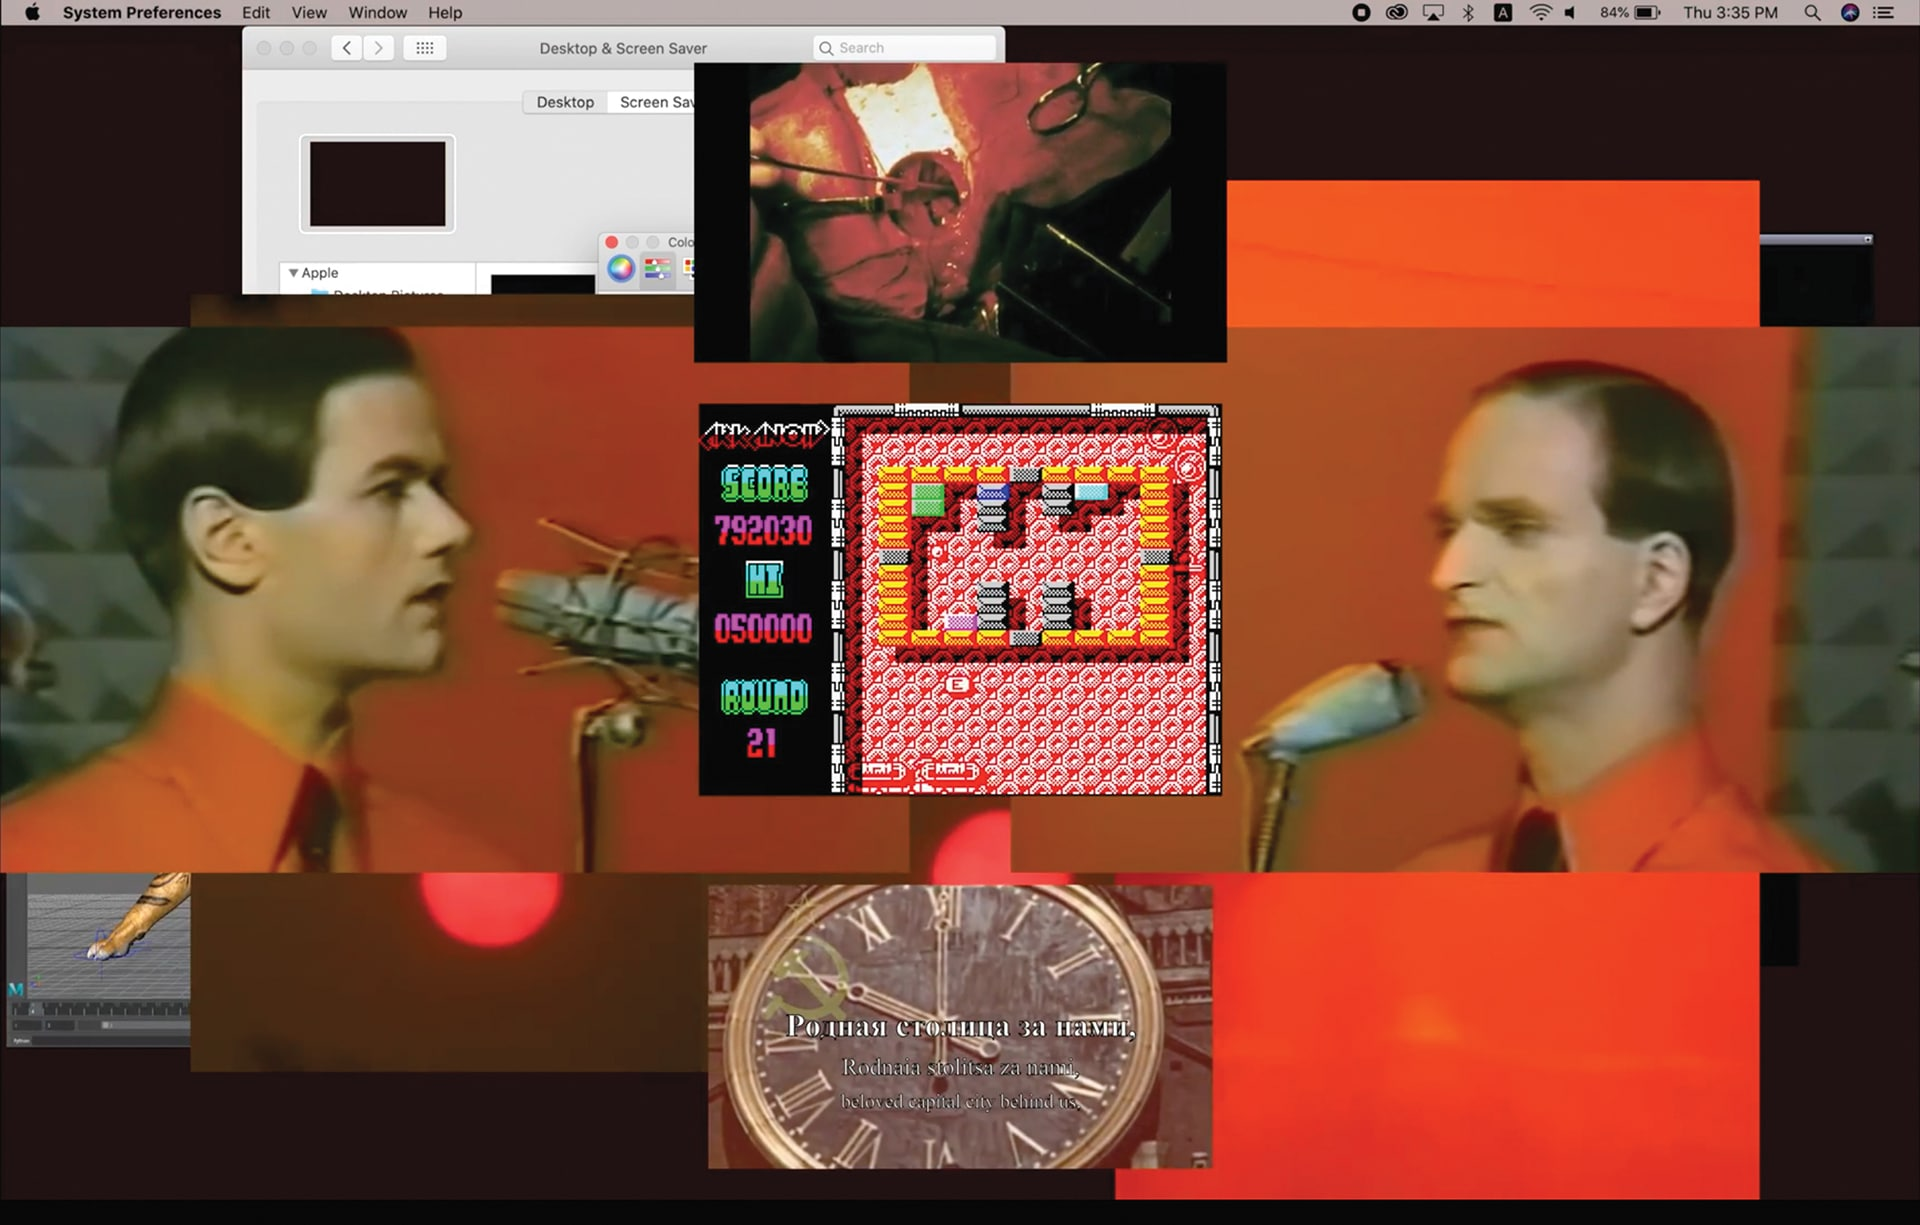 Screen shots of Shiqi Zhang and Heehyun Choi's desktop films created for Rebecca Baron's The Essay Film course.